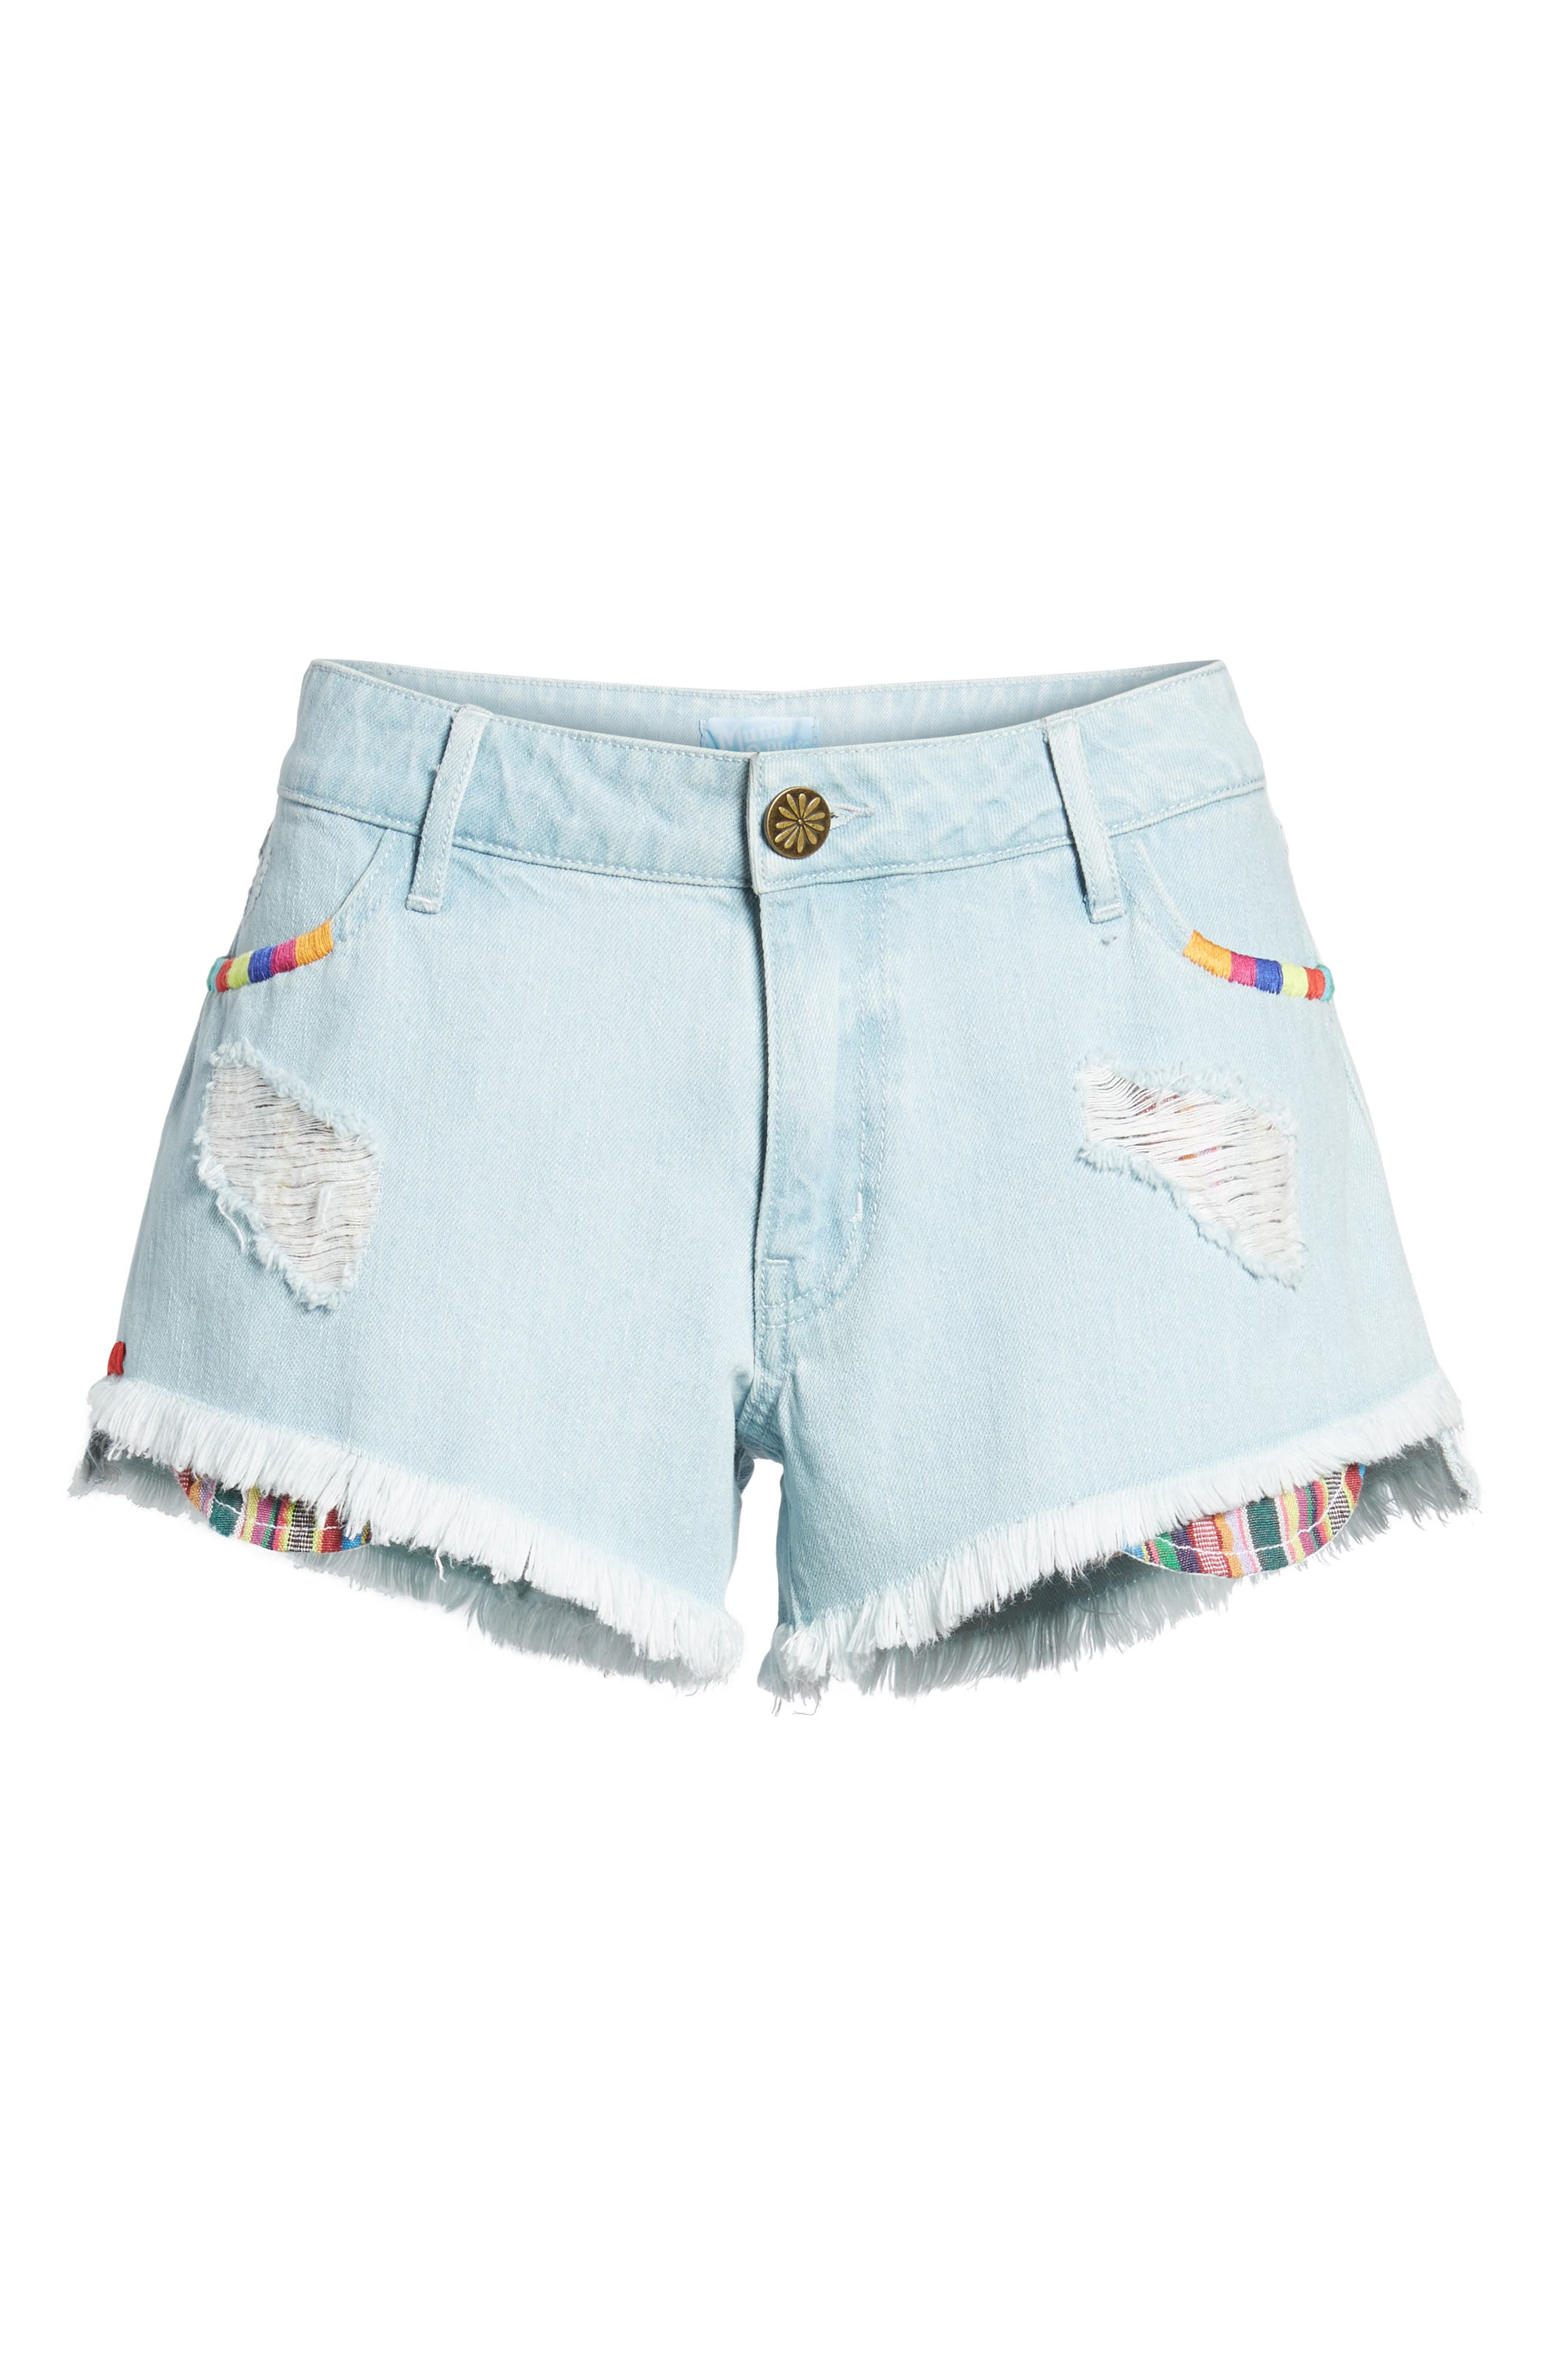 Cabo Cutoff Denim Shorts,                             Alternate thumbnail 6, color,                             400